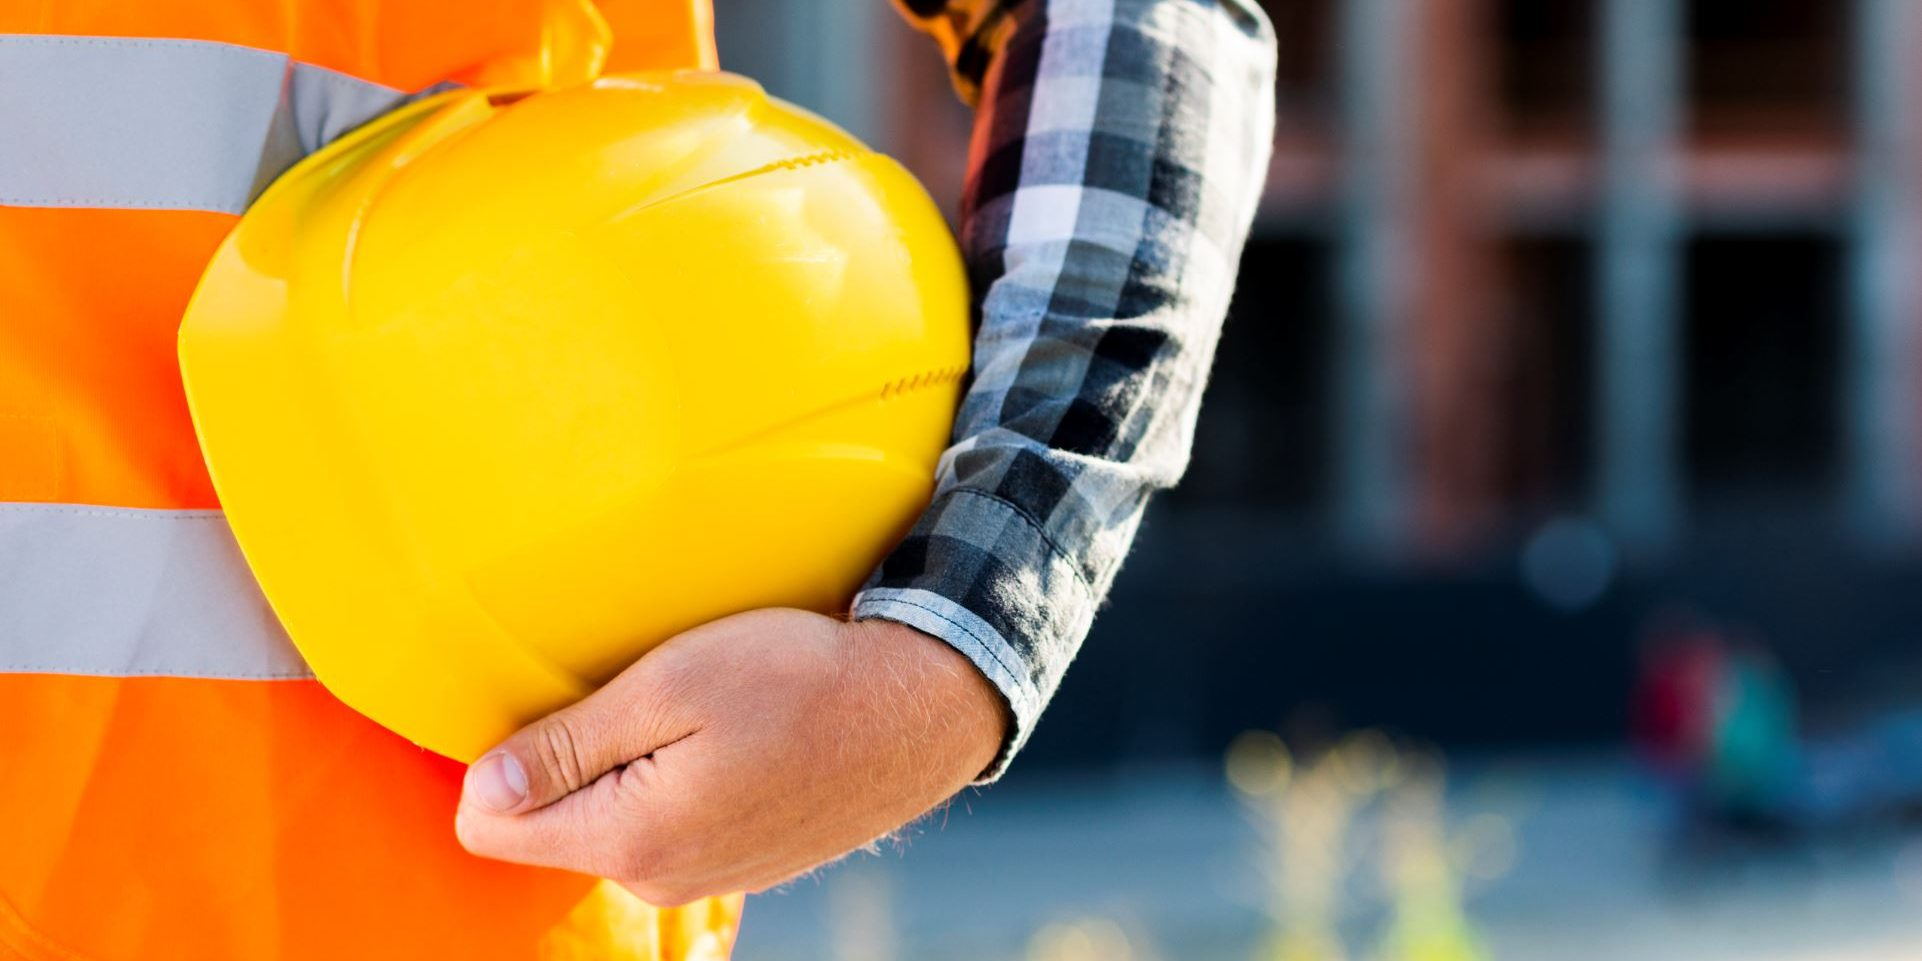 AUSTRALIA'S LARGEST SUPER FUND PURCHASES 25% SHARE IN AFFORDABLE HOUSING DEVELOPMENT GROWTH